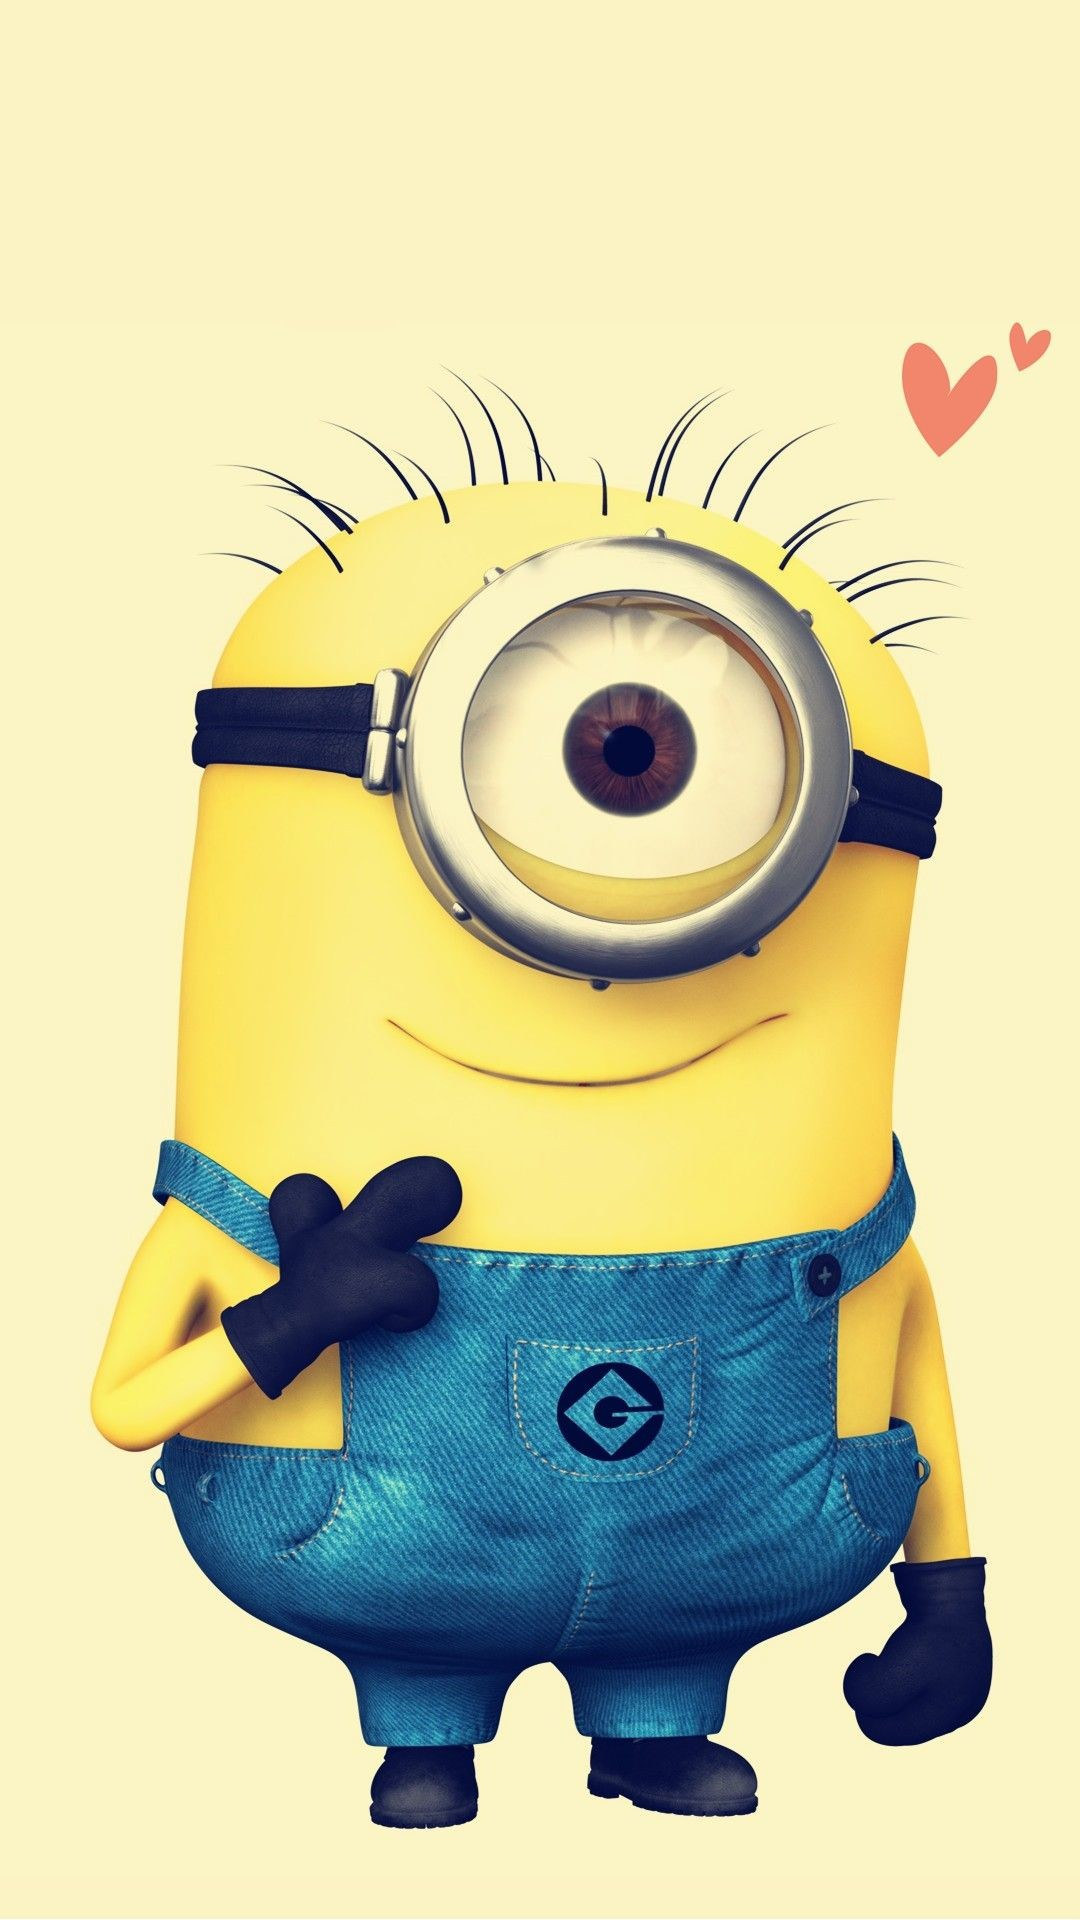 Res: 1080x1920, 2014 Halloween Despicable Me minion apple iphone 6 plus wallpaper HD  #iphone #wallpaper